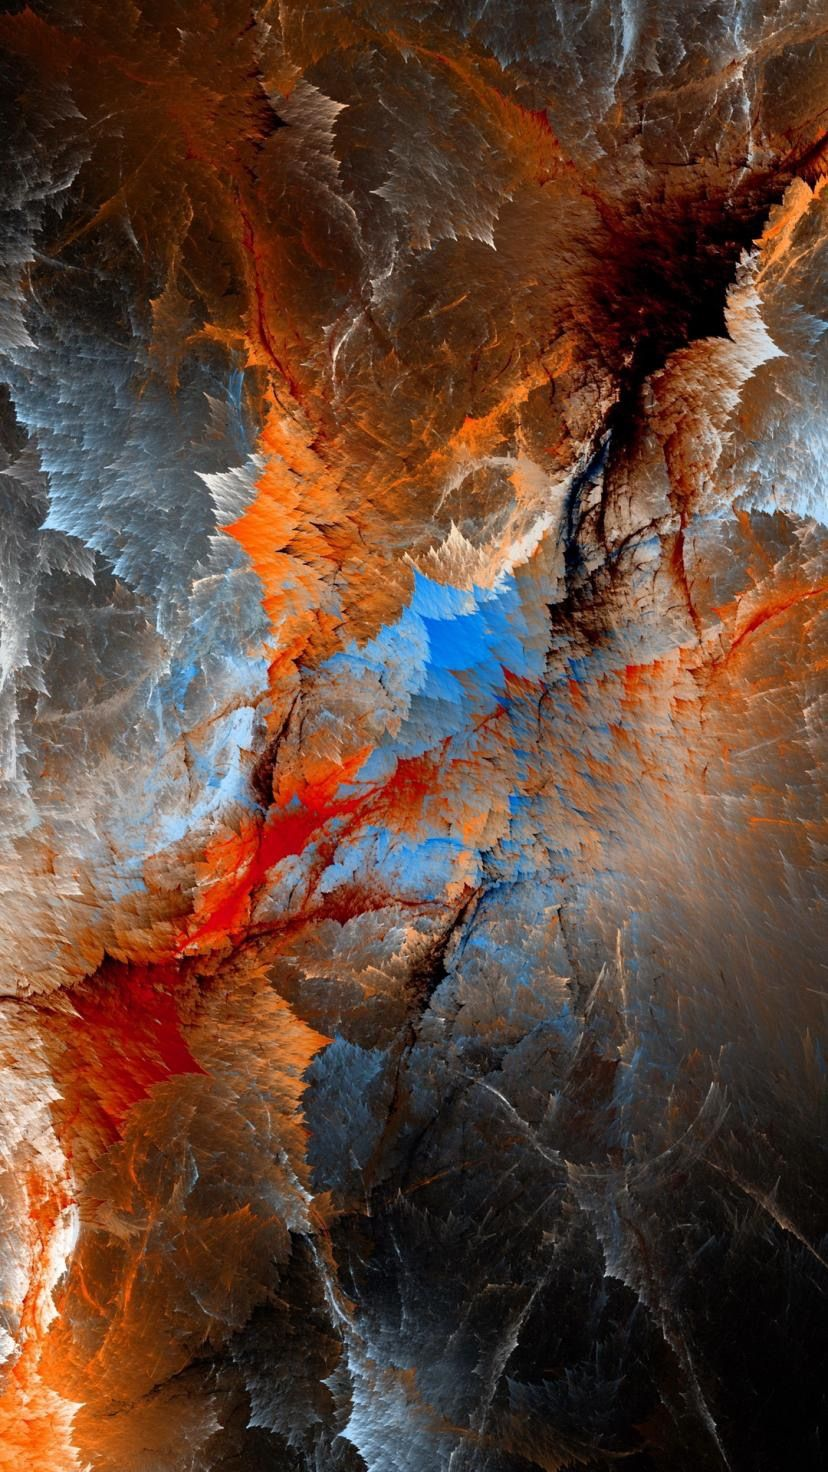 Pin by Rylee Clifton on iPhone Abstract wallpaper